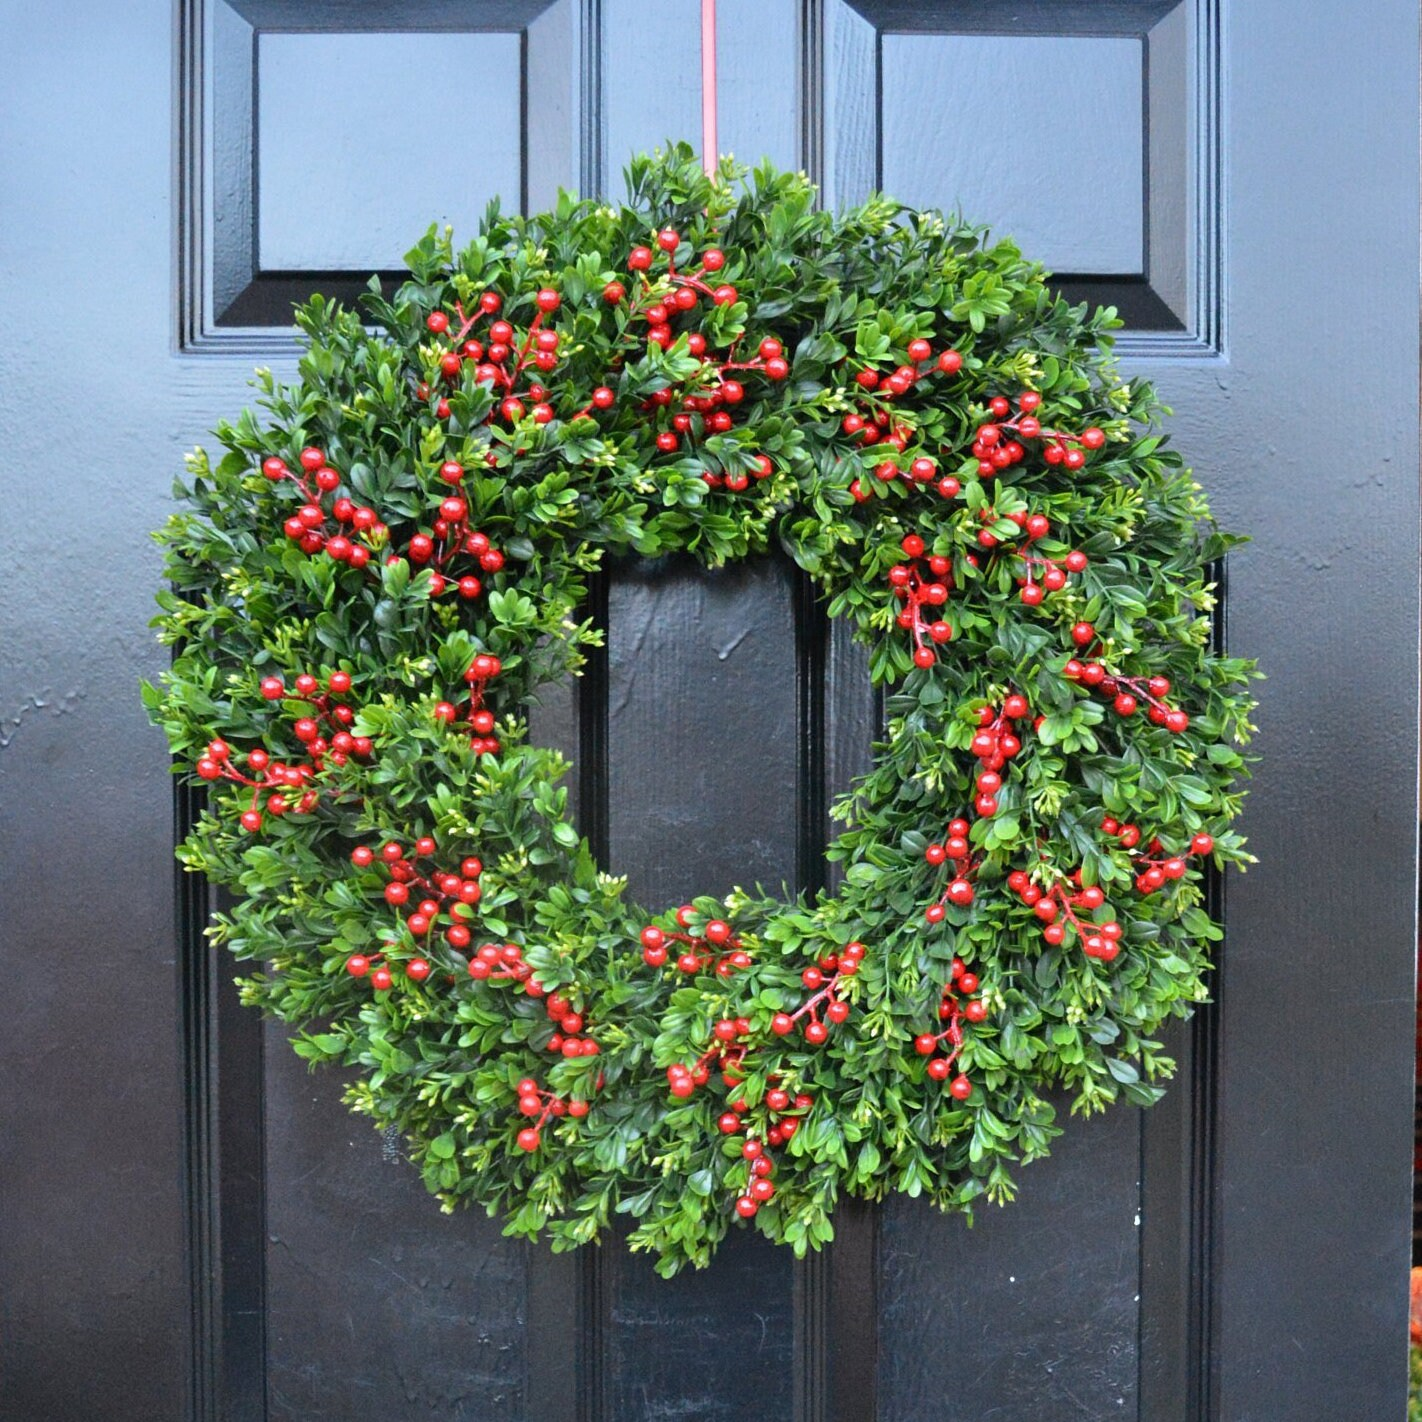 Boxwood And Red Berries Christmas Wreath Outdoor Weatherproof Holiday Wreaths Winter Decor Thin Storm Door Wreath Decoration 14 24 Inch